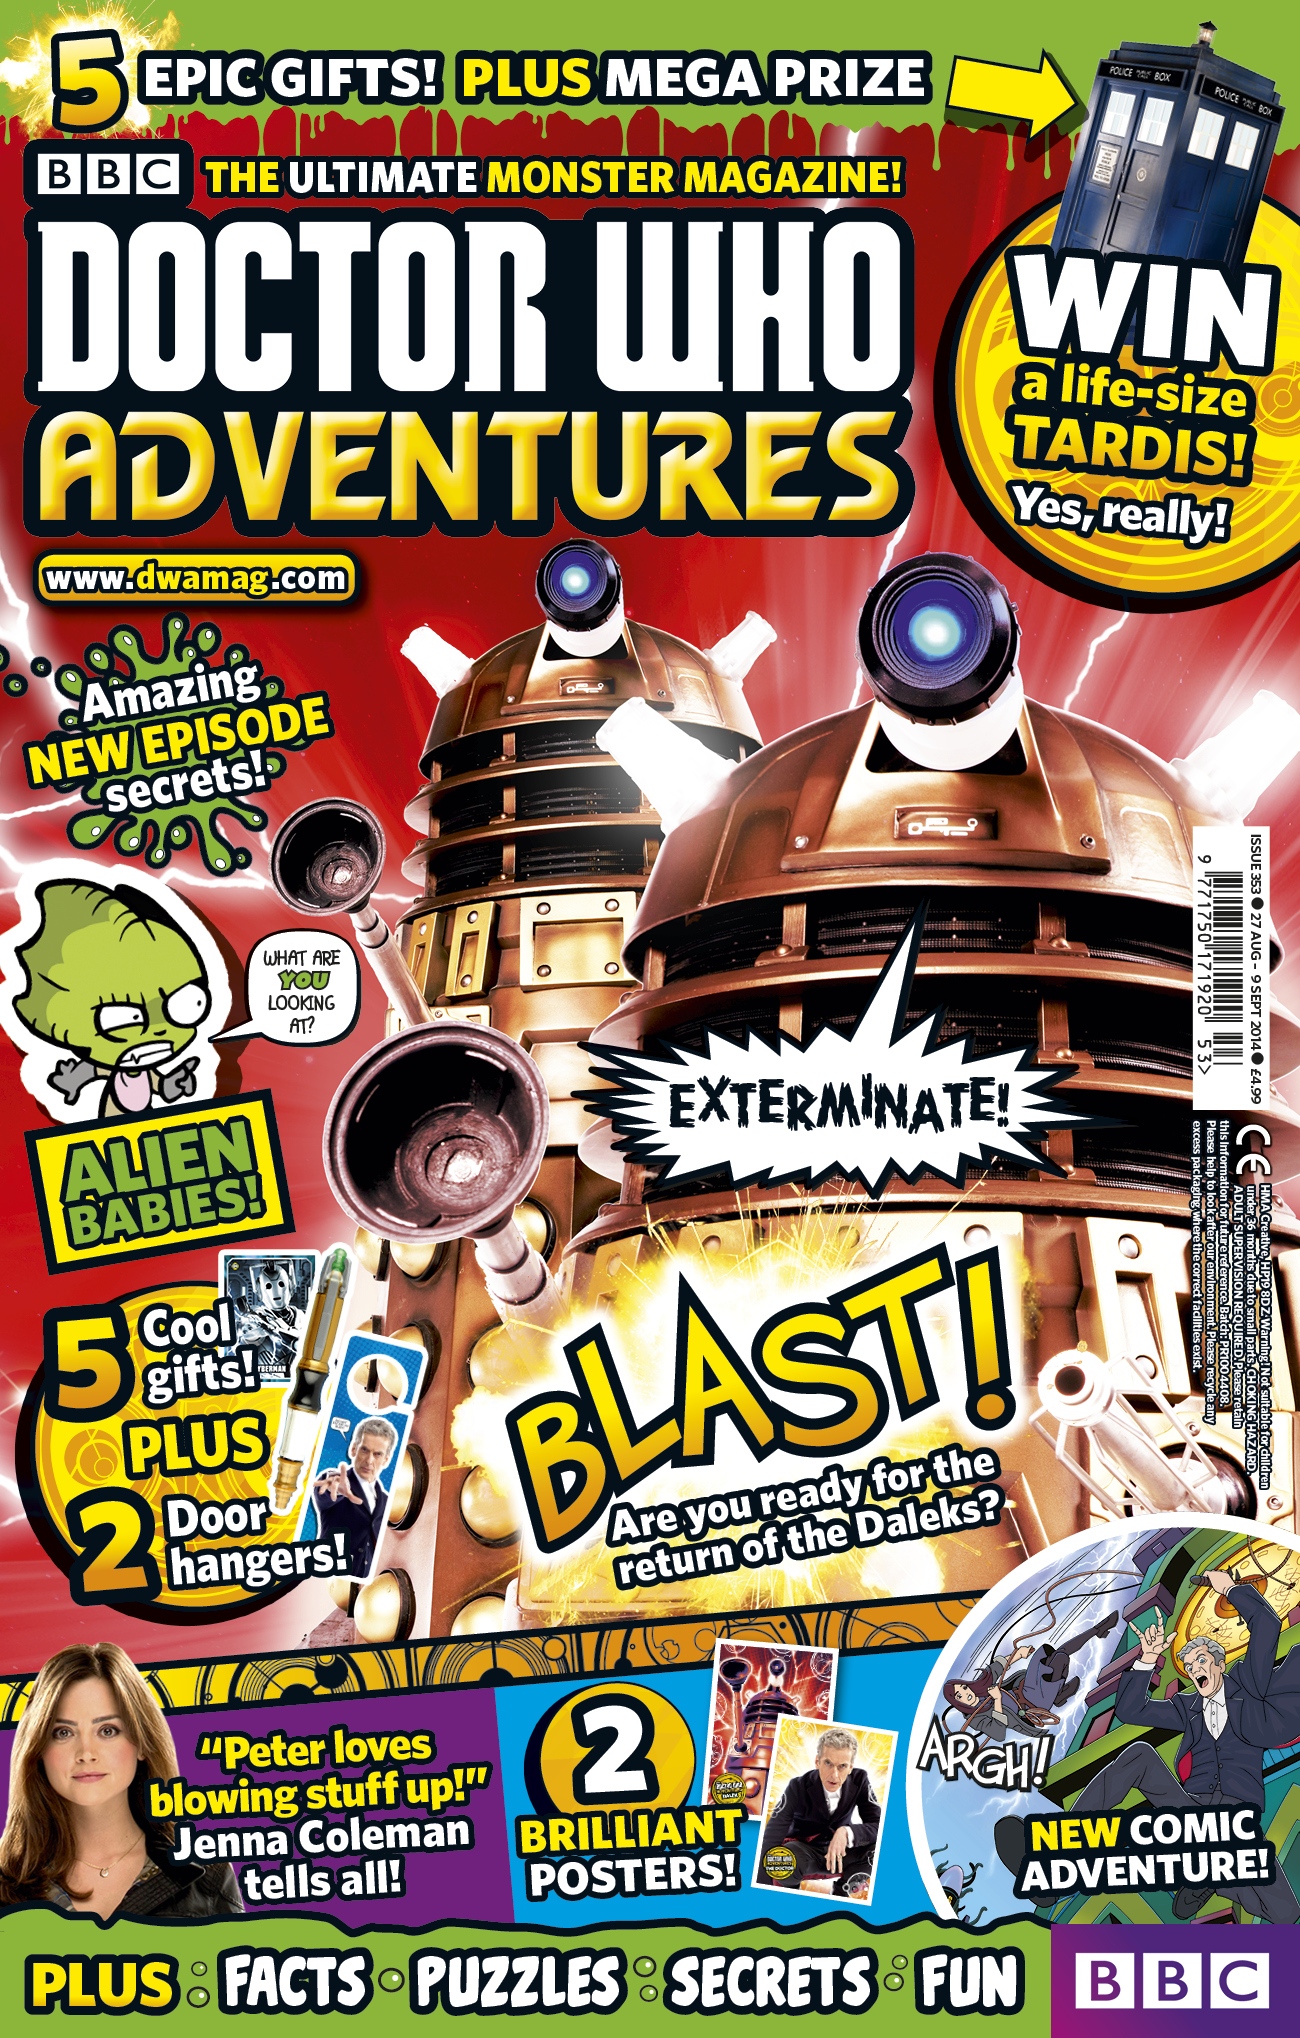 BBC Doctor Who Adventures Issue 353